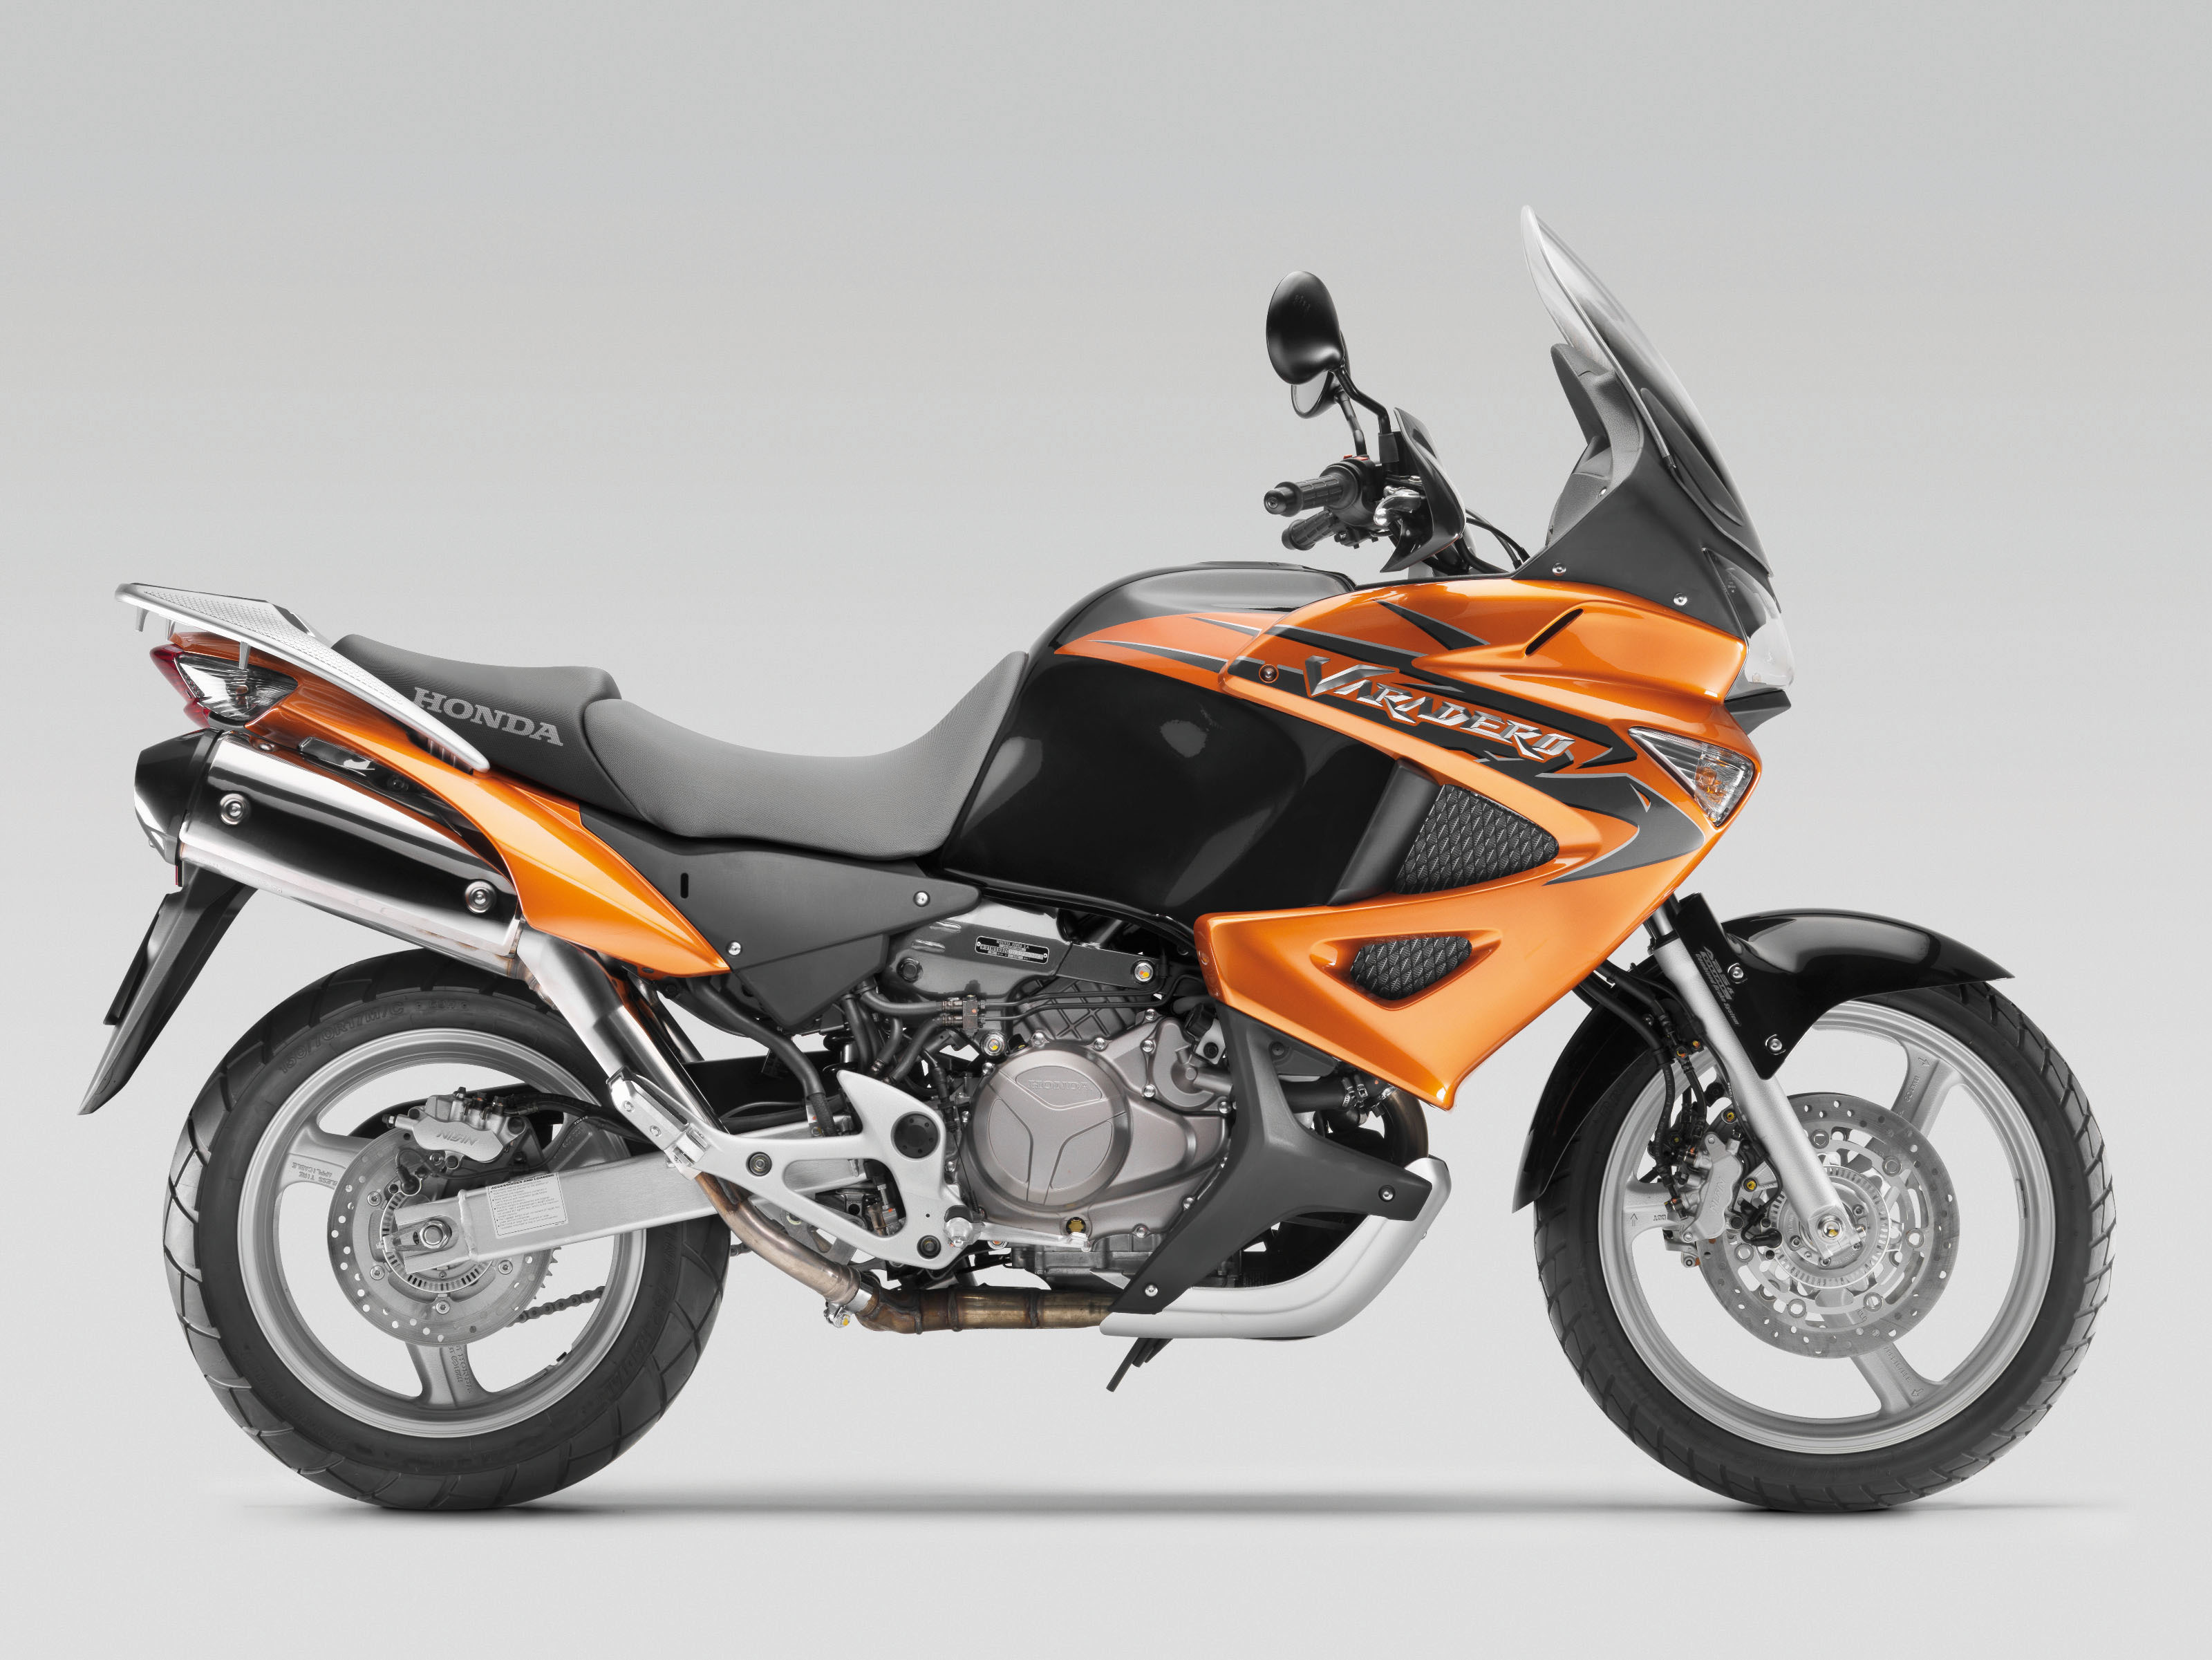 Honda motorbike Moto vehicles HD Wallpaper